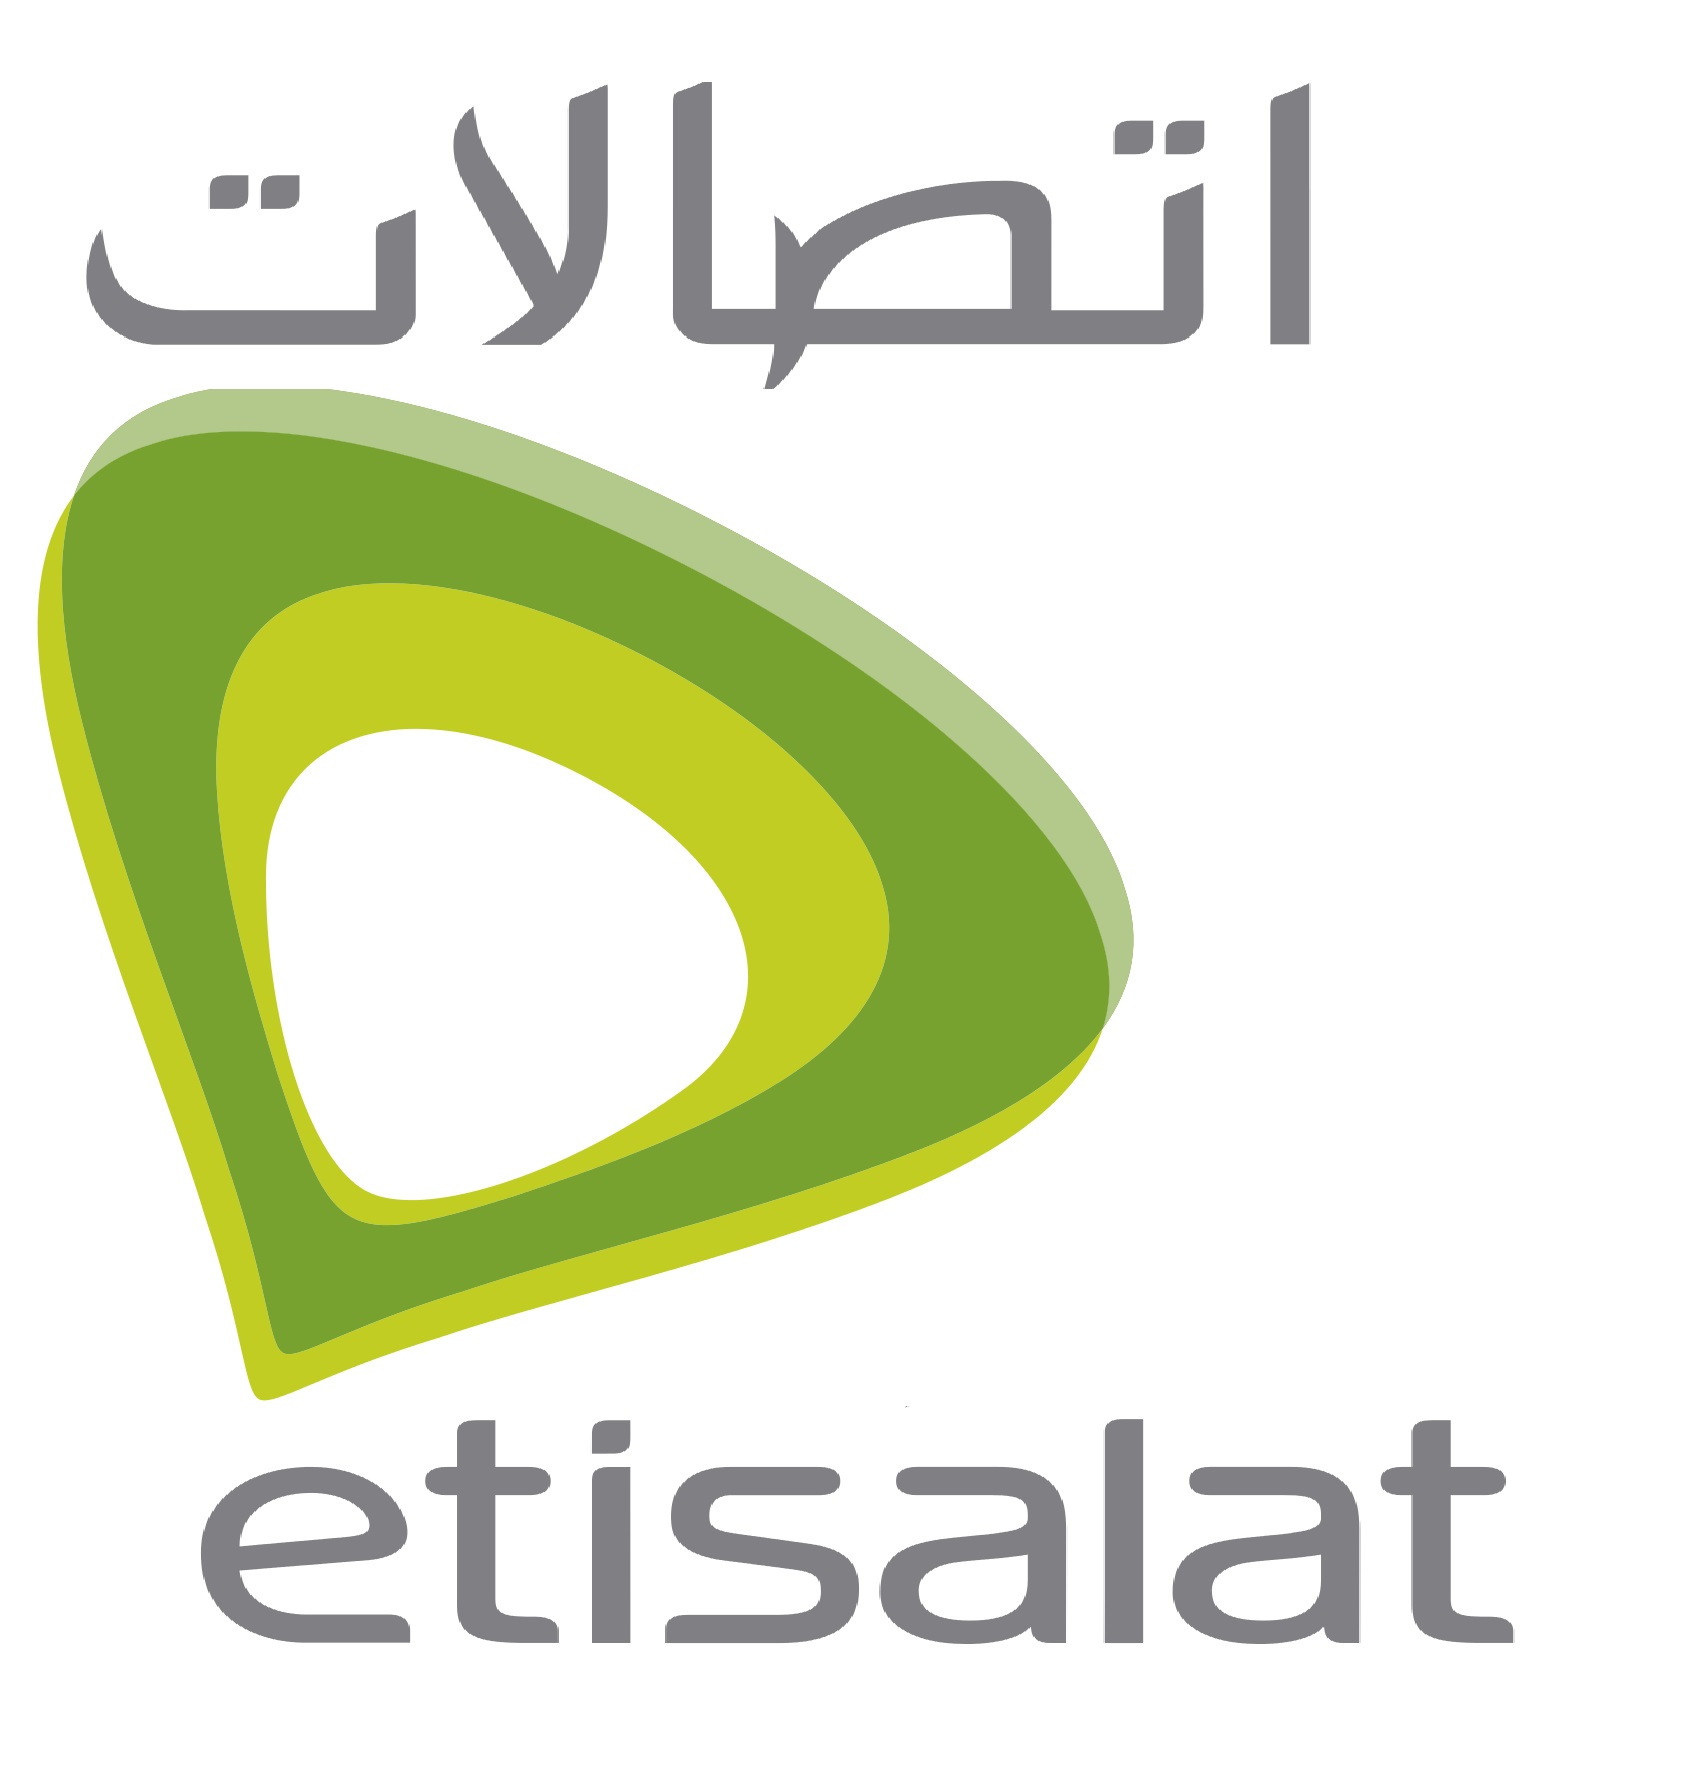 etisalat telecommunications Etisalat mulls bid for stake in maroc telecom uae based operator group etisalat has confirmed that it has submitted a preliminary expression of interest to acquire .